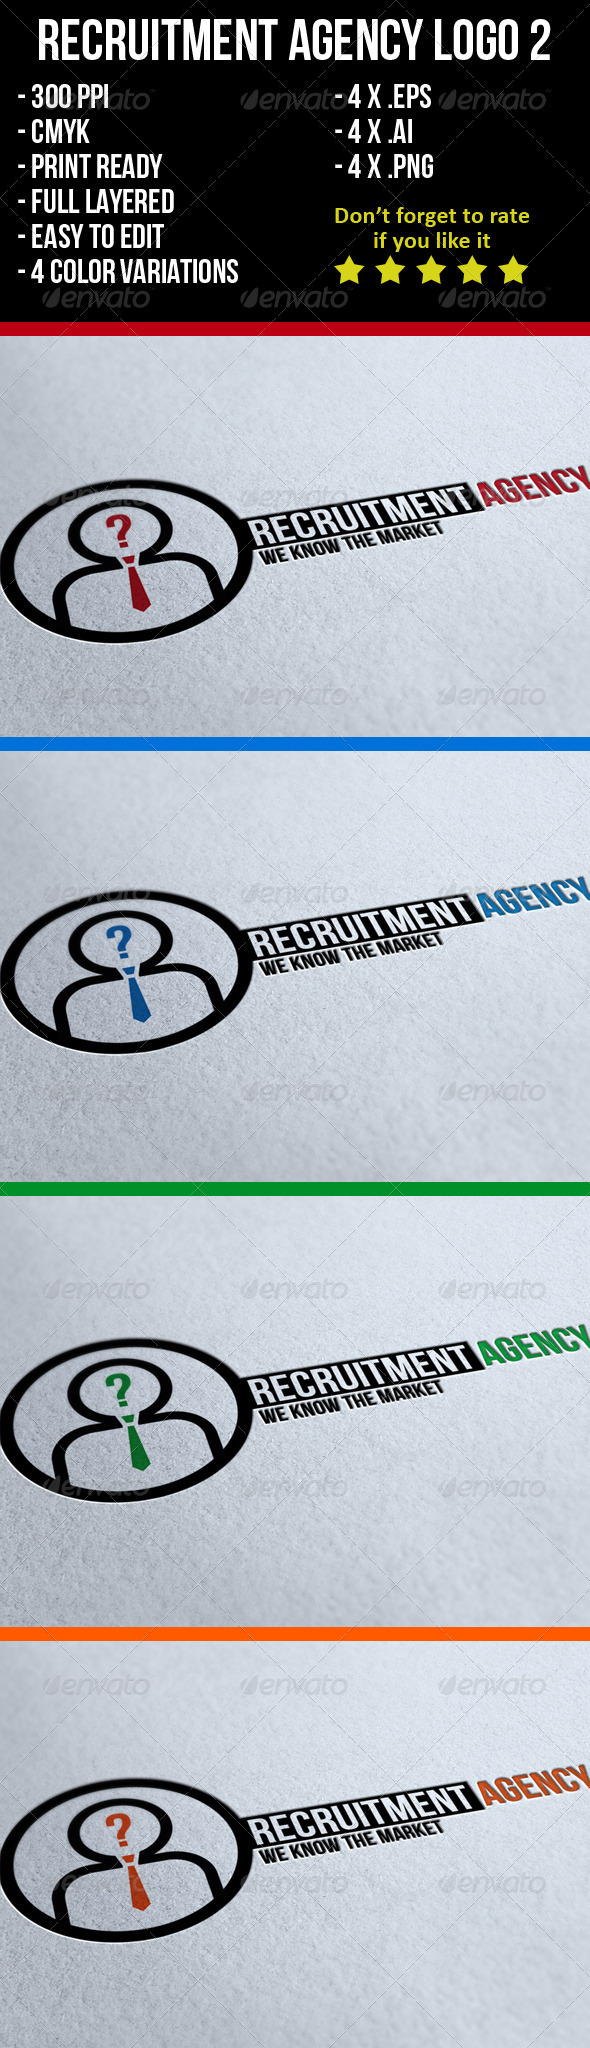 GraphicRiver Recruitment Agency Logo 2 3895735